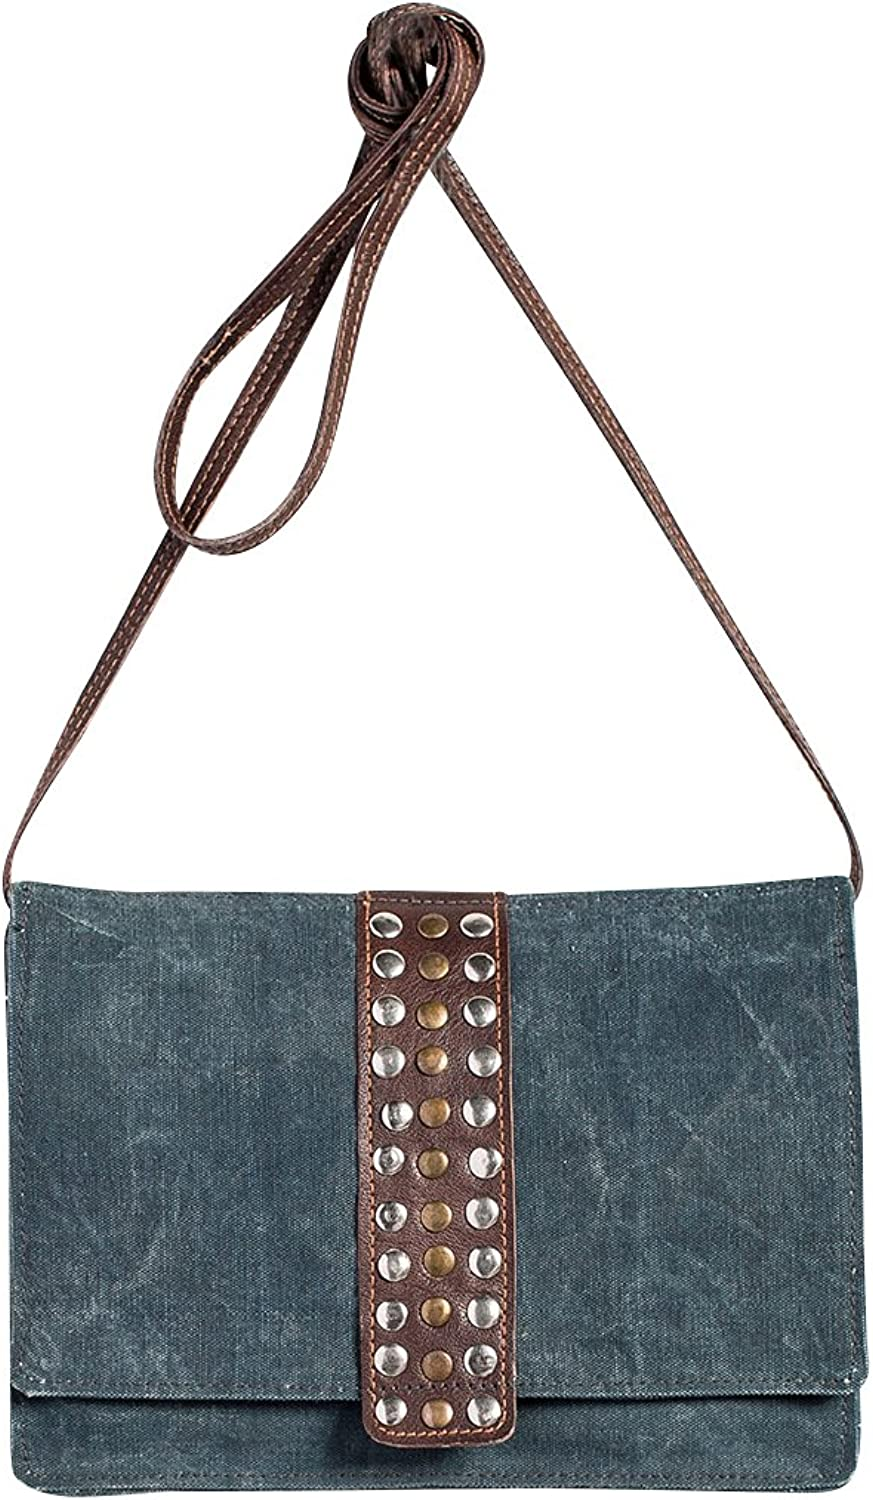 Mona B Make A Statement Crossbody Bag M3711